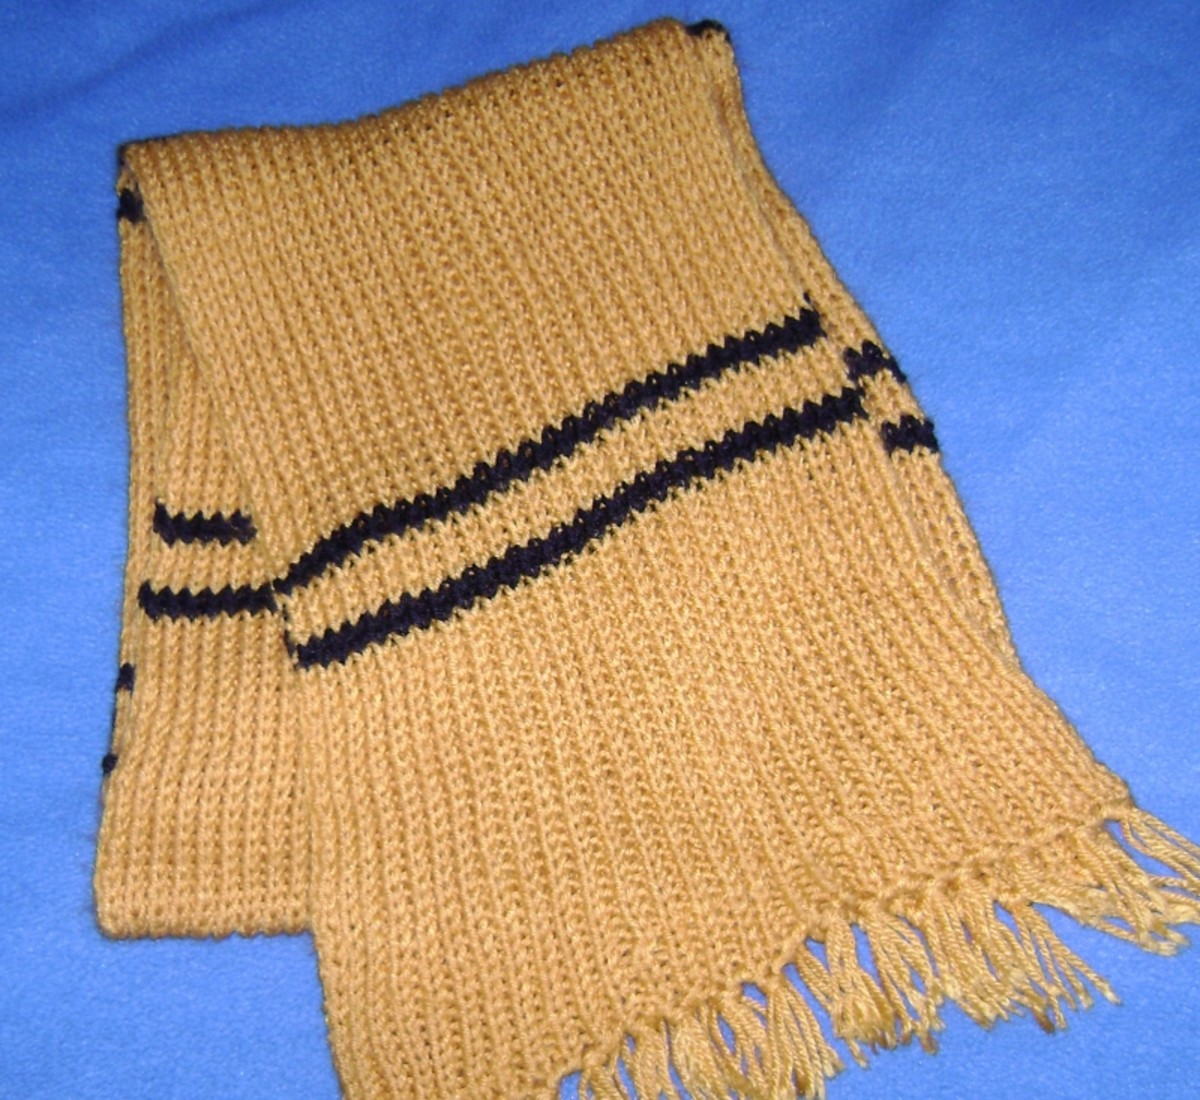 Hufflepuff Scarf in the trapped bar design from years 3 and later